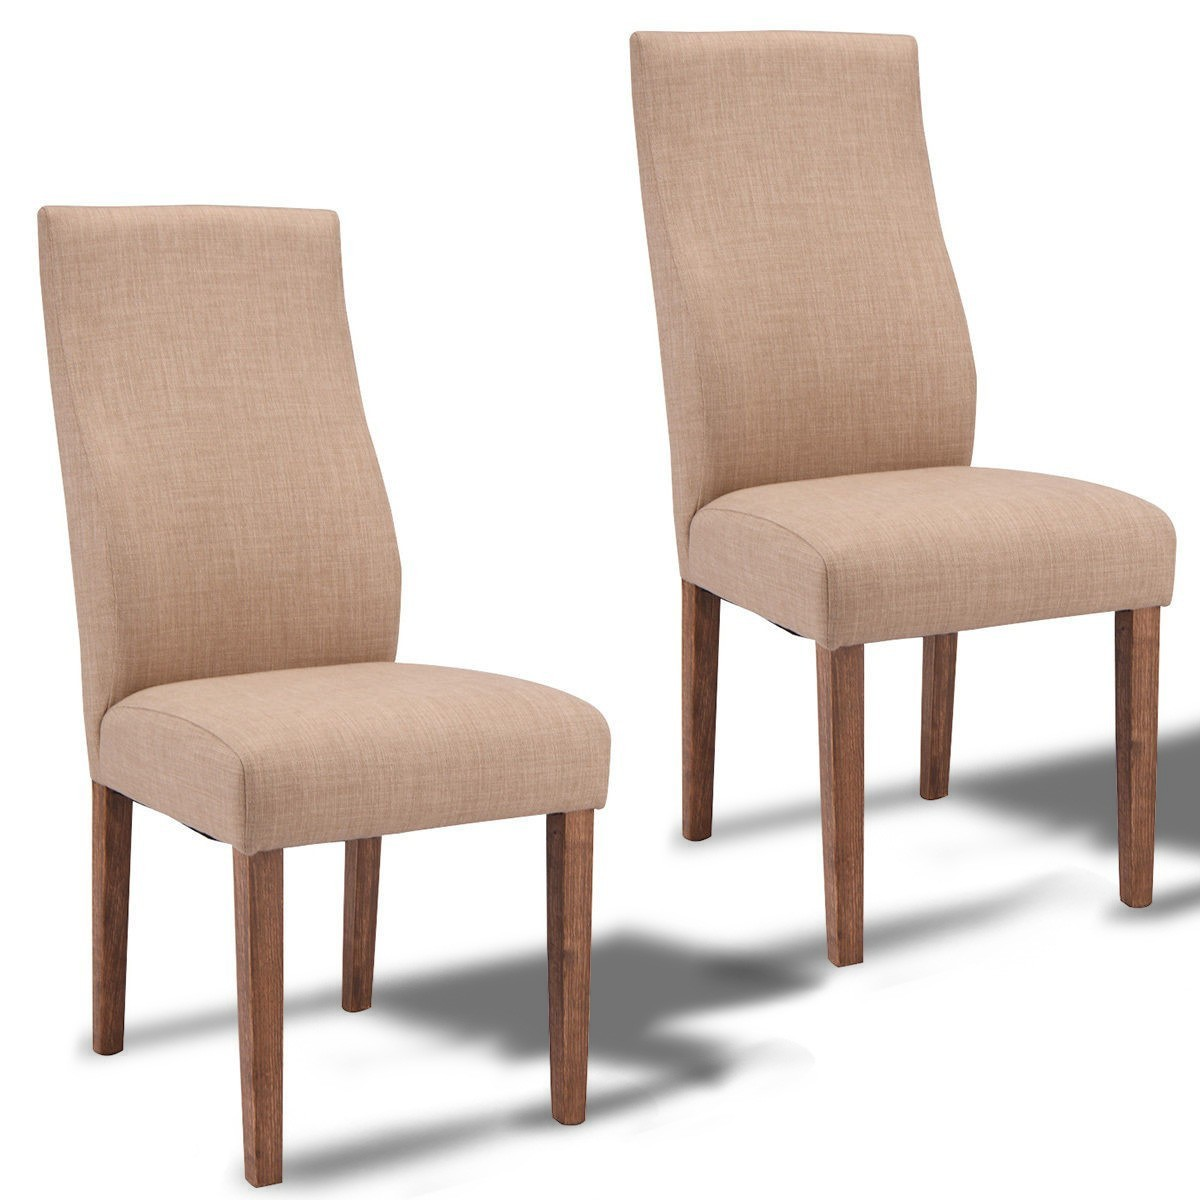 set of 2 fabric upholstered high back armless dining chairs beige. Black Bedroom Furniture Sets. Home Design Ideas